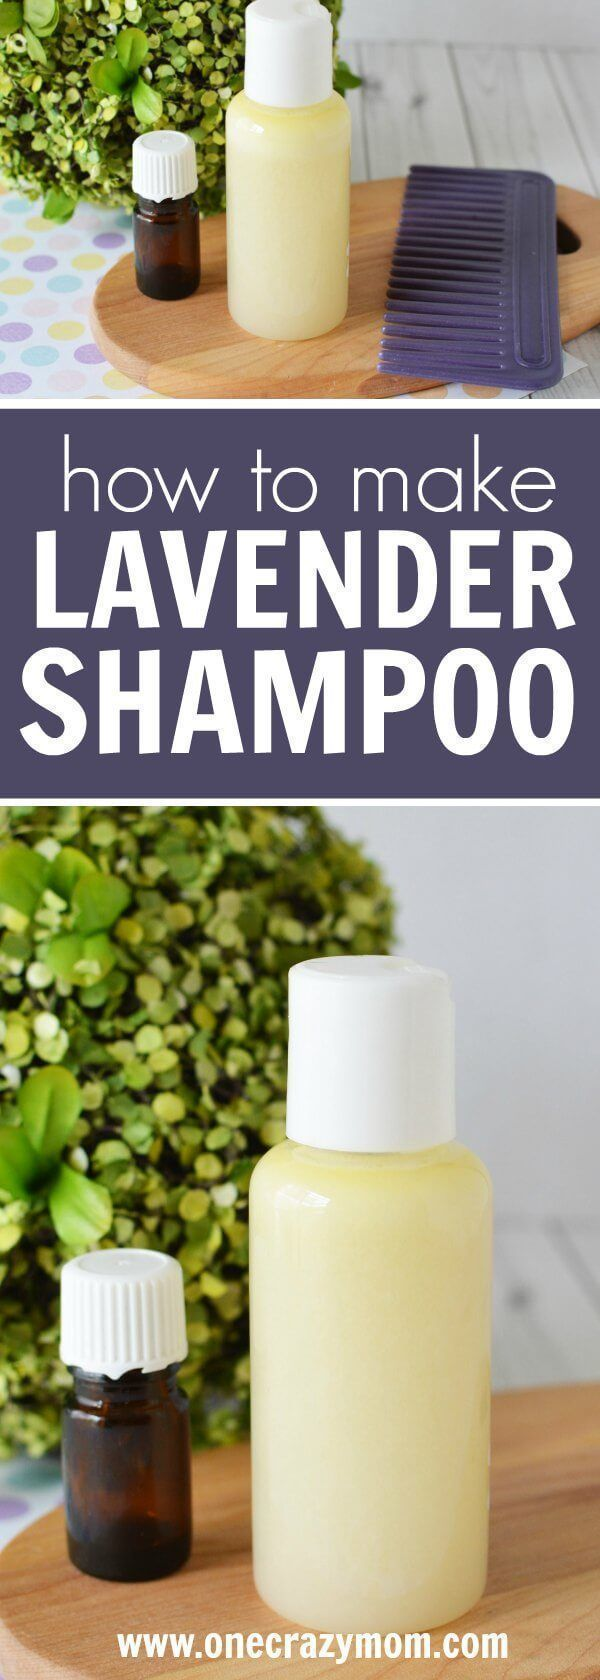 DIY Shampoo – diy lavender shampoo that works great – Natural Hair for BEGINNERS – YouTube